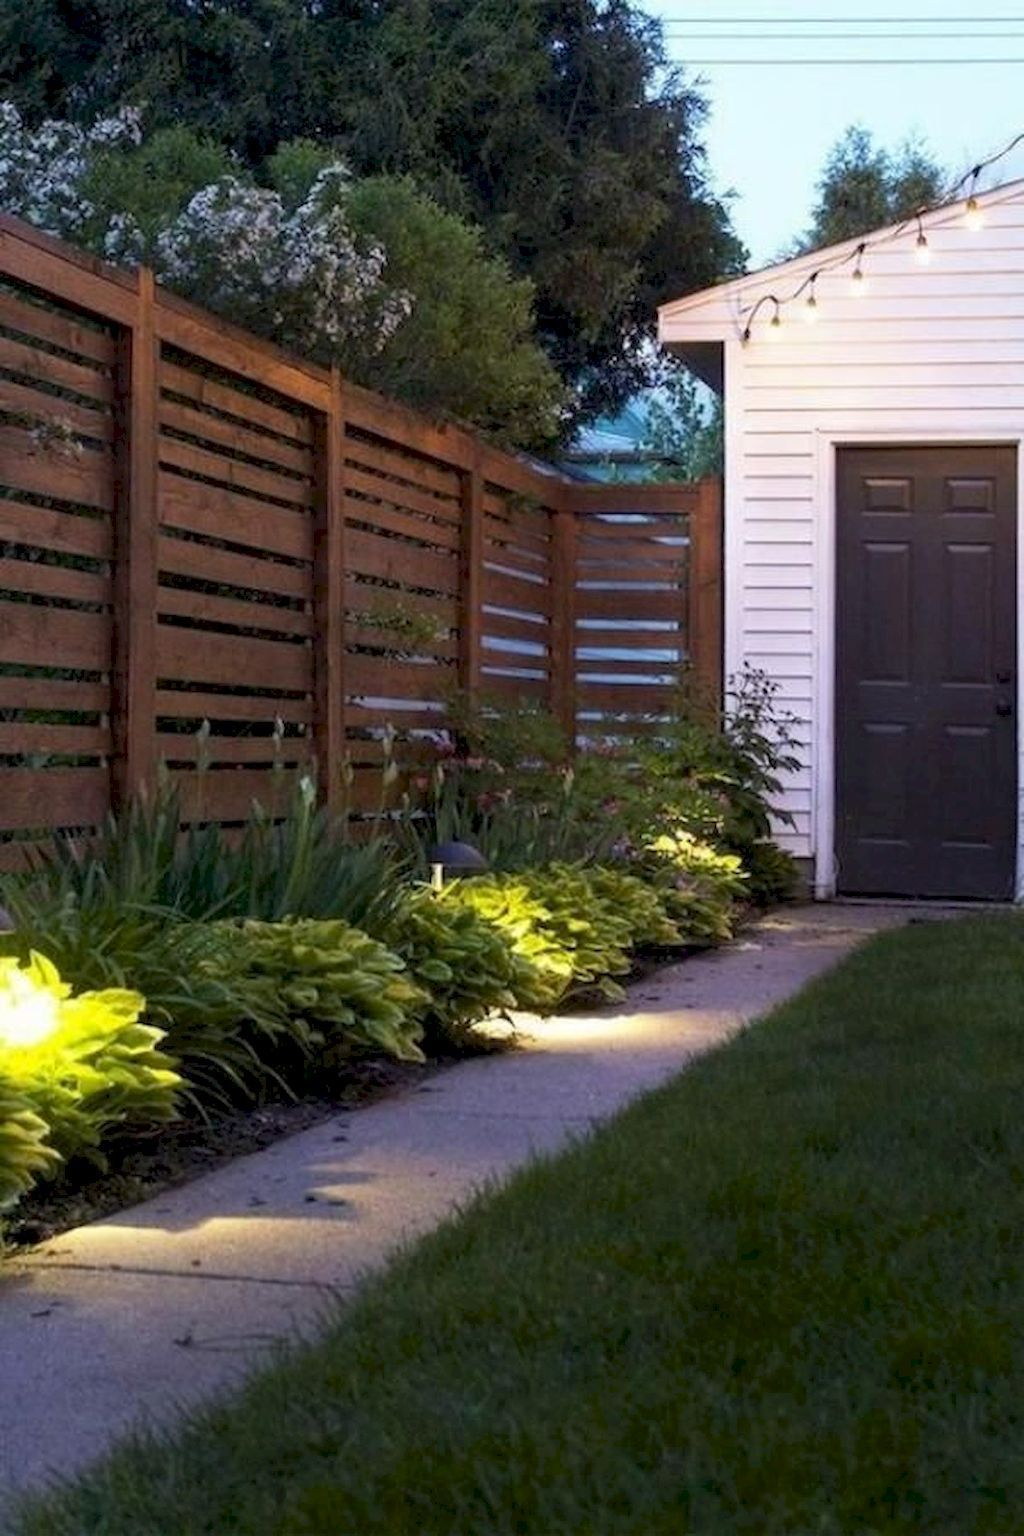 37 Easy Cheap Backyard Privacy Fence Design Ideas In 2019 in 15 Awesome Ways How to Craft Backyard Privacy Ideas Cheap